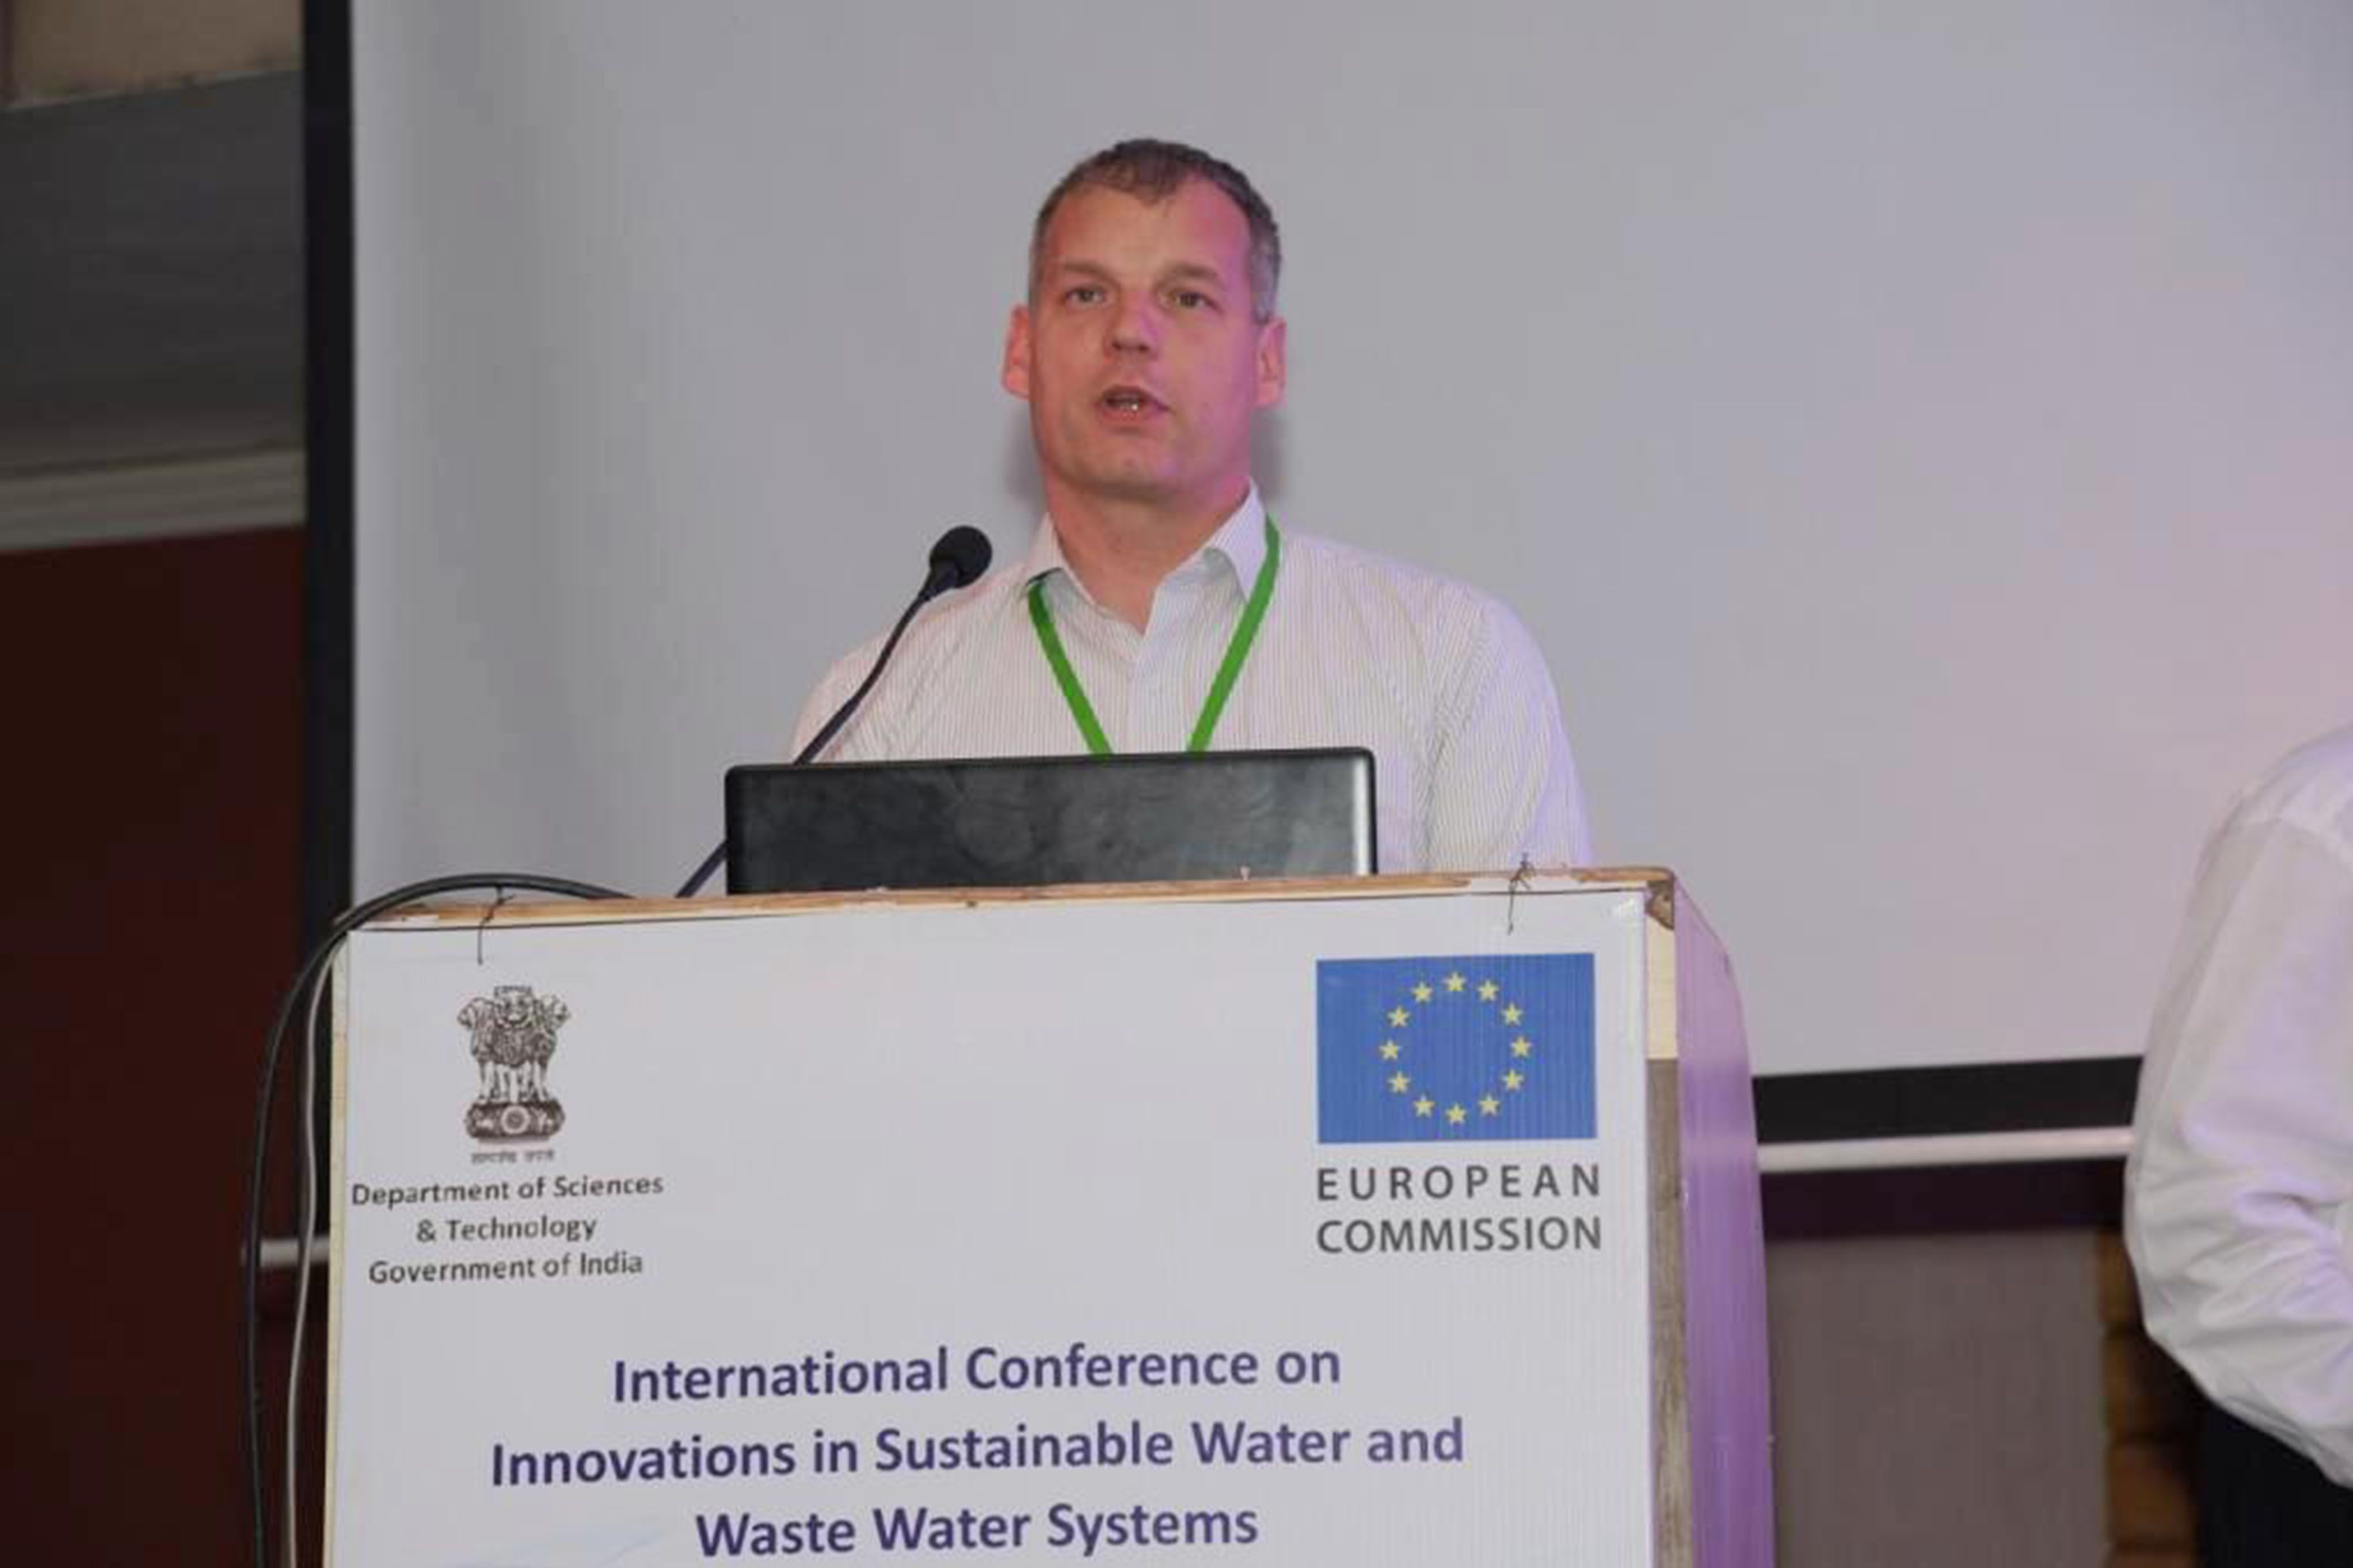 Mirko Haenel, ISWATS 2016 (International conference on innovations in sustainable water and waste water systems. NaWaTech project